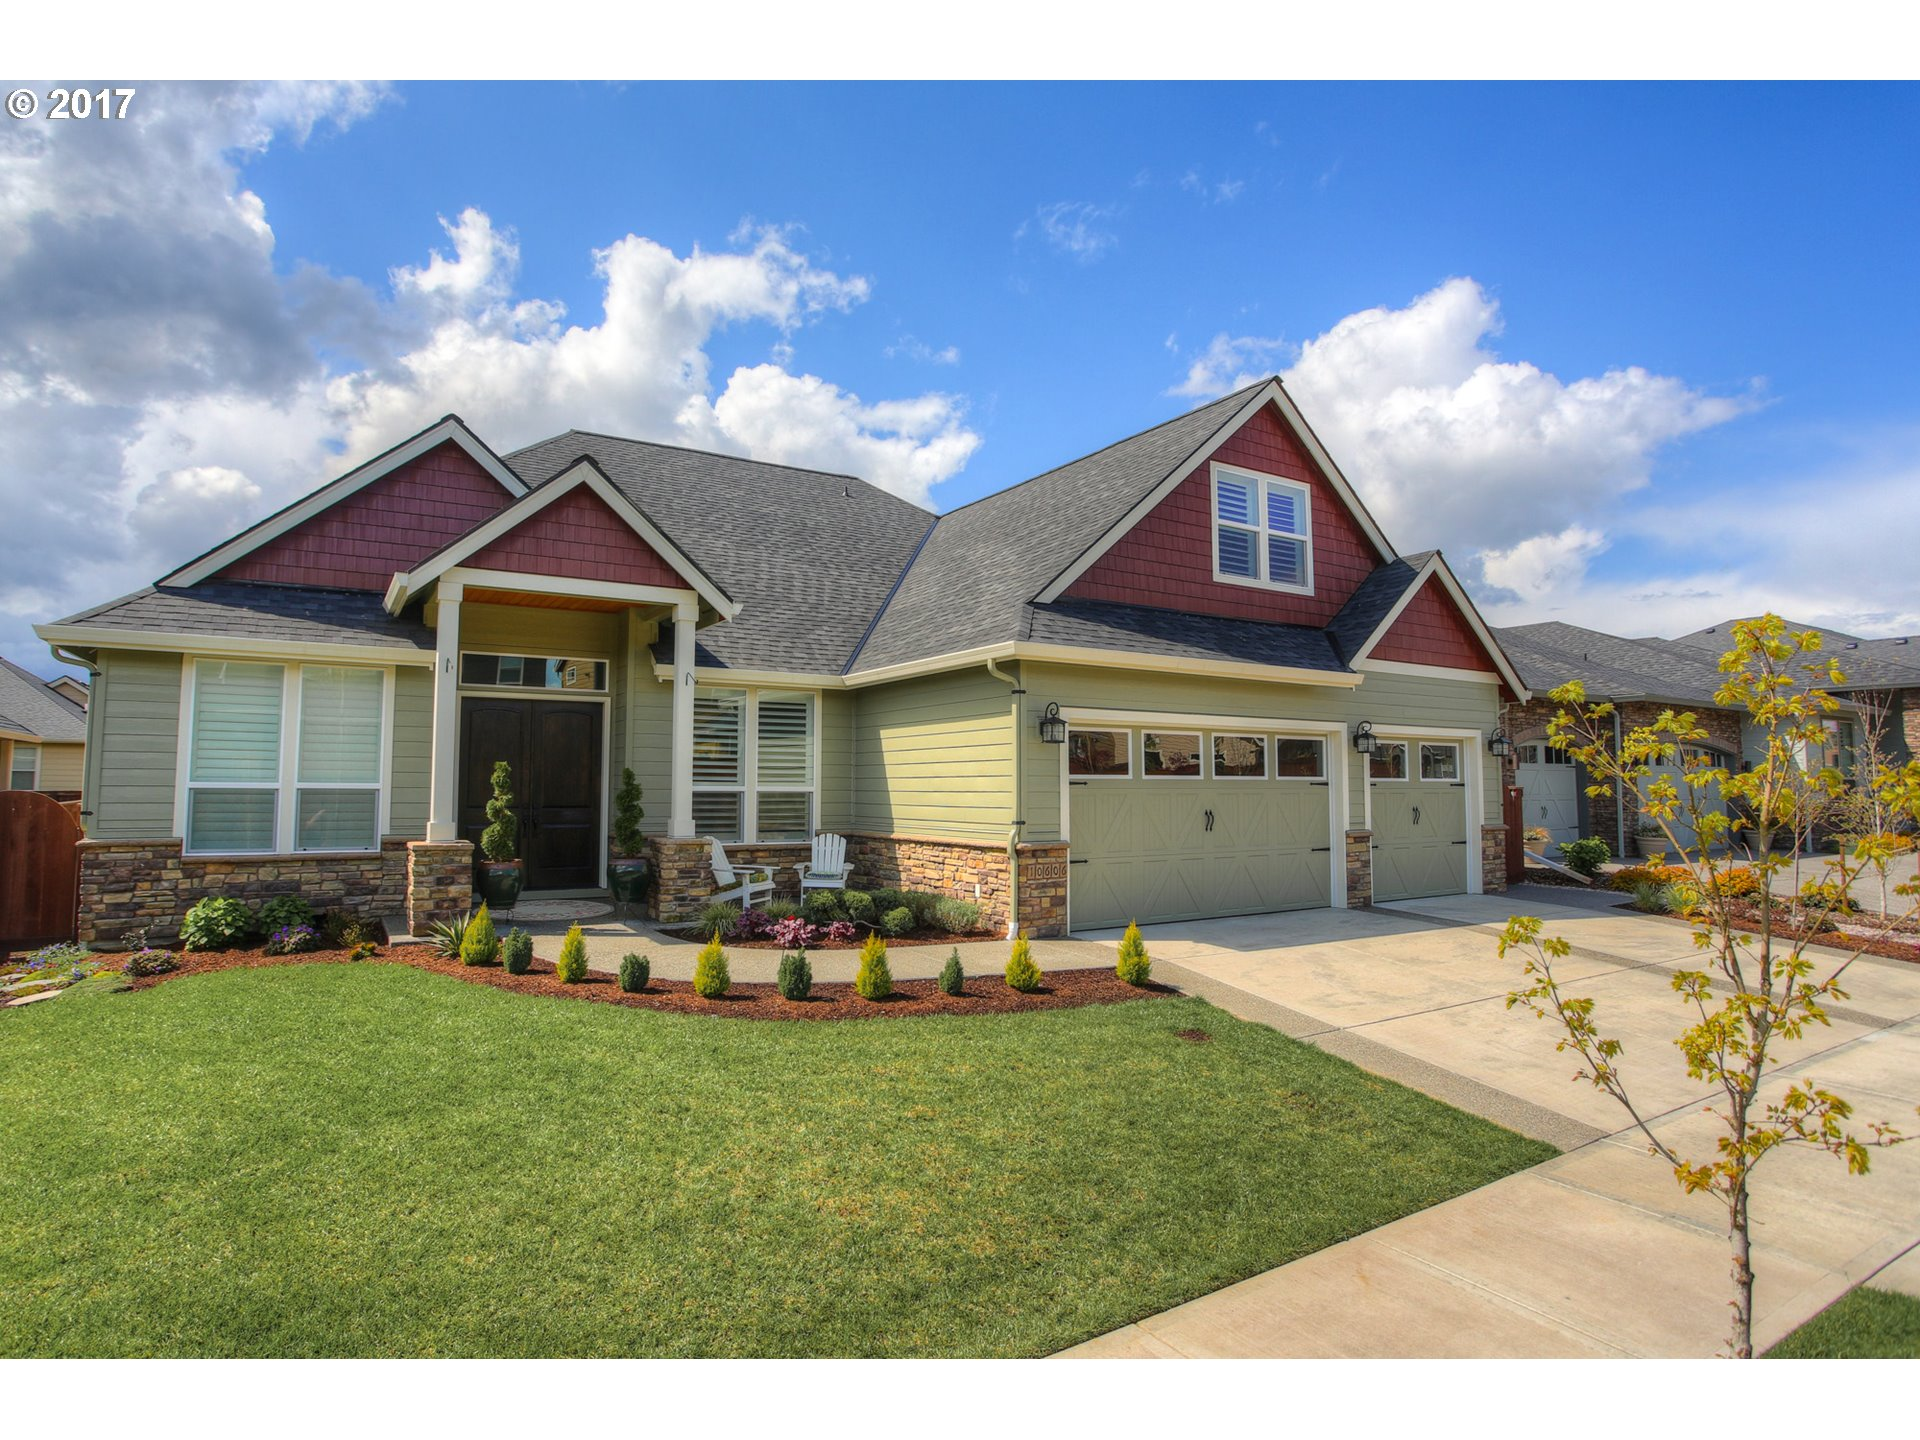 10606 NW 34TH AVE, Vancouver, WA 98685